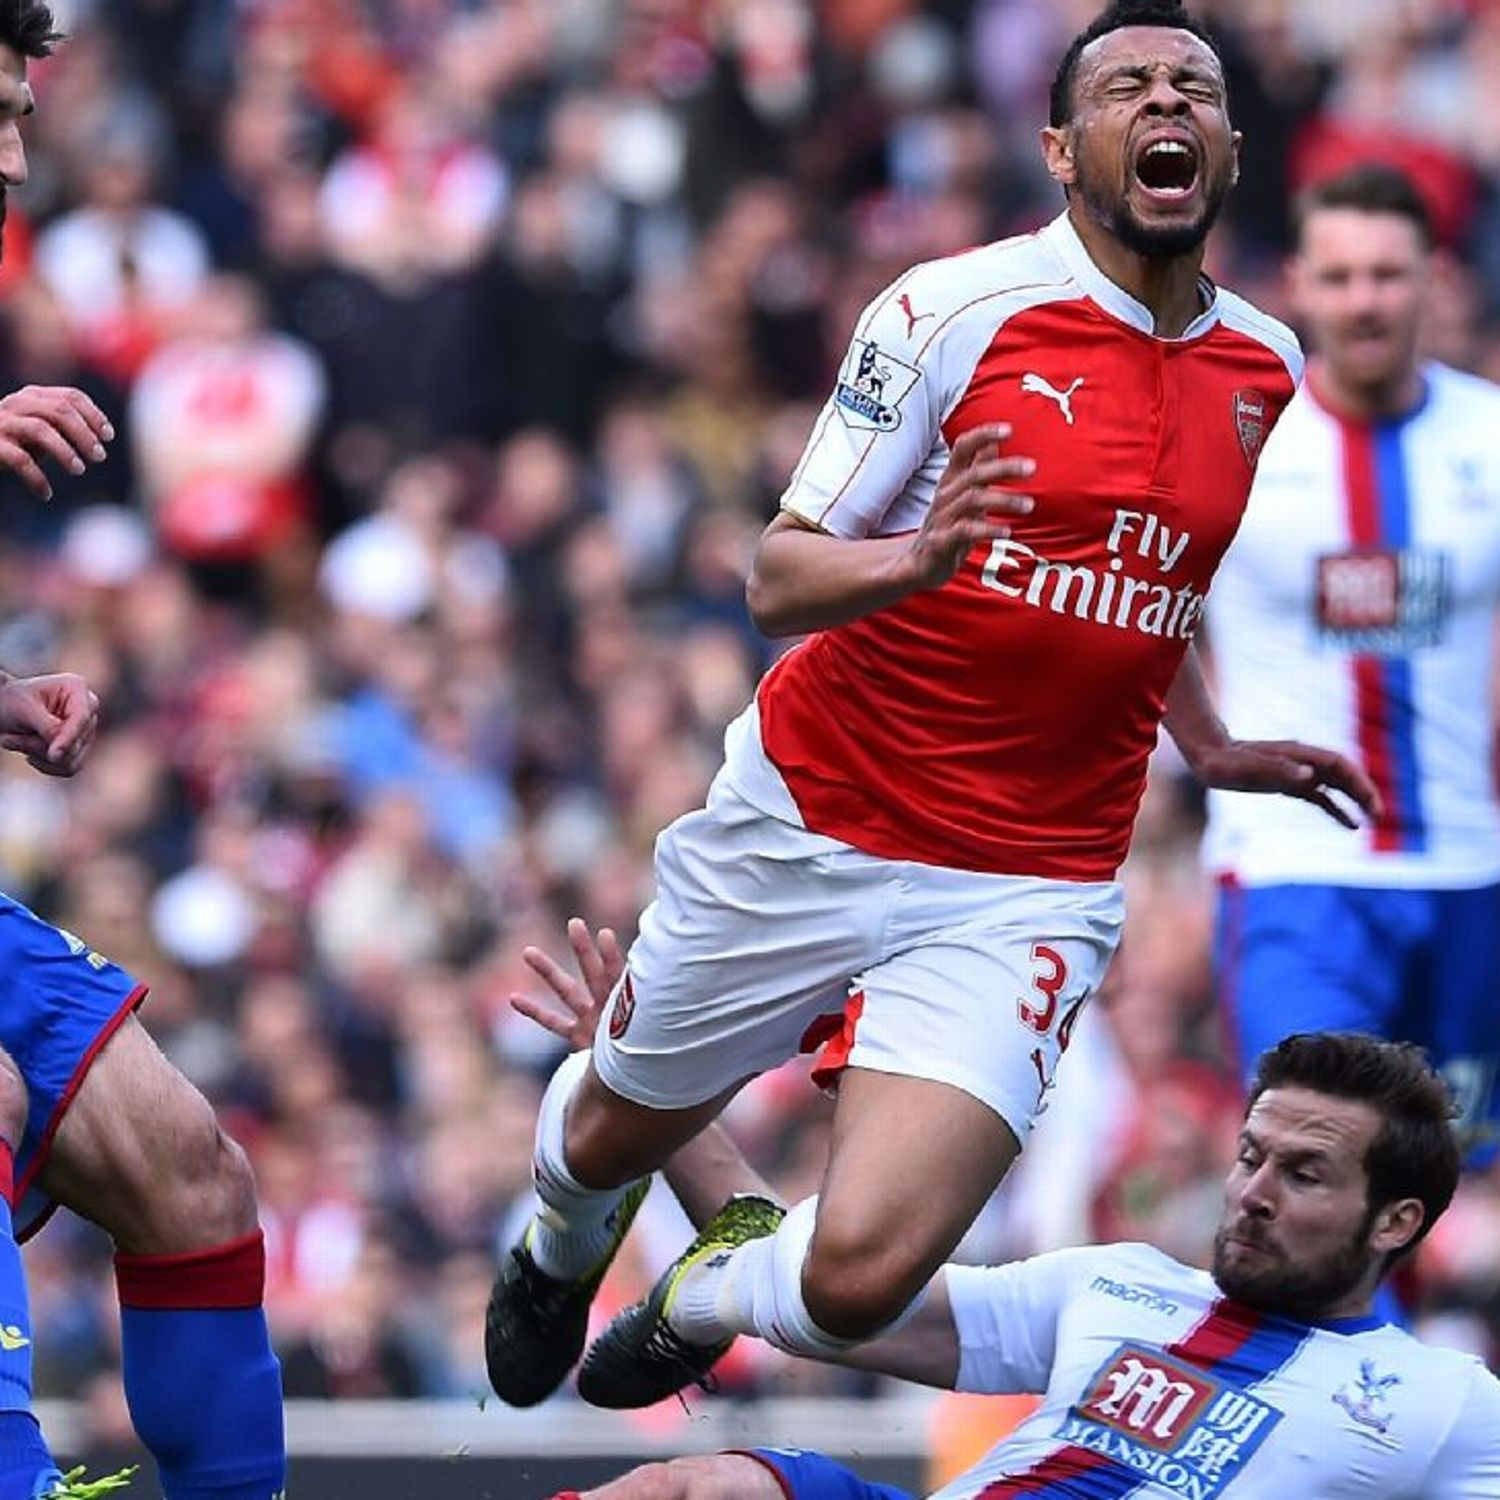 Arsenal's Francis Coquelin faces fitness test for Burnley, Giroud still out